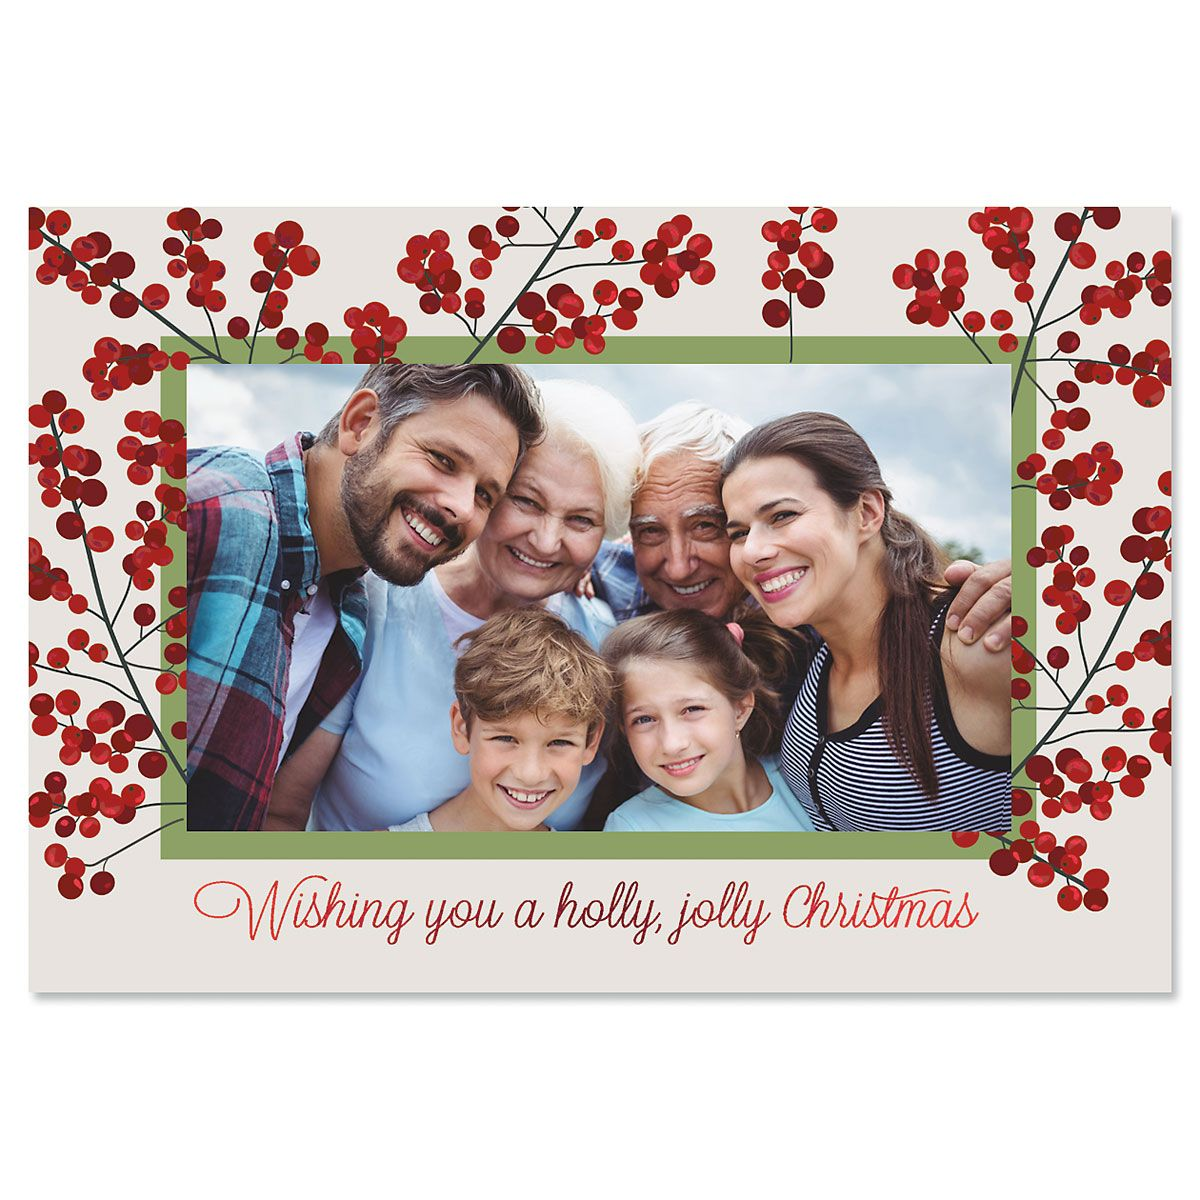 Insert Your Own Photo Christmas Cards